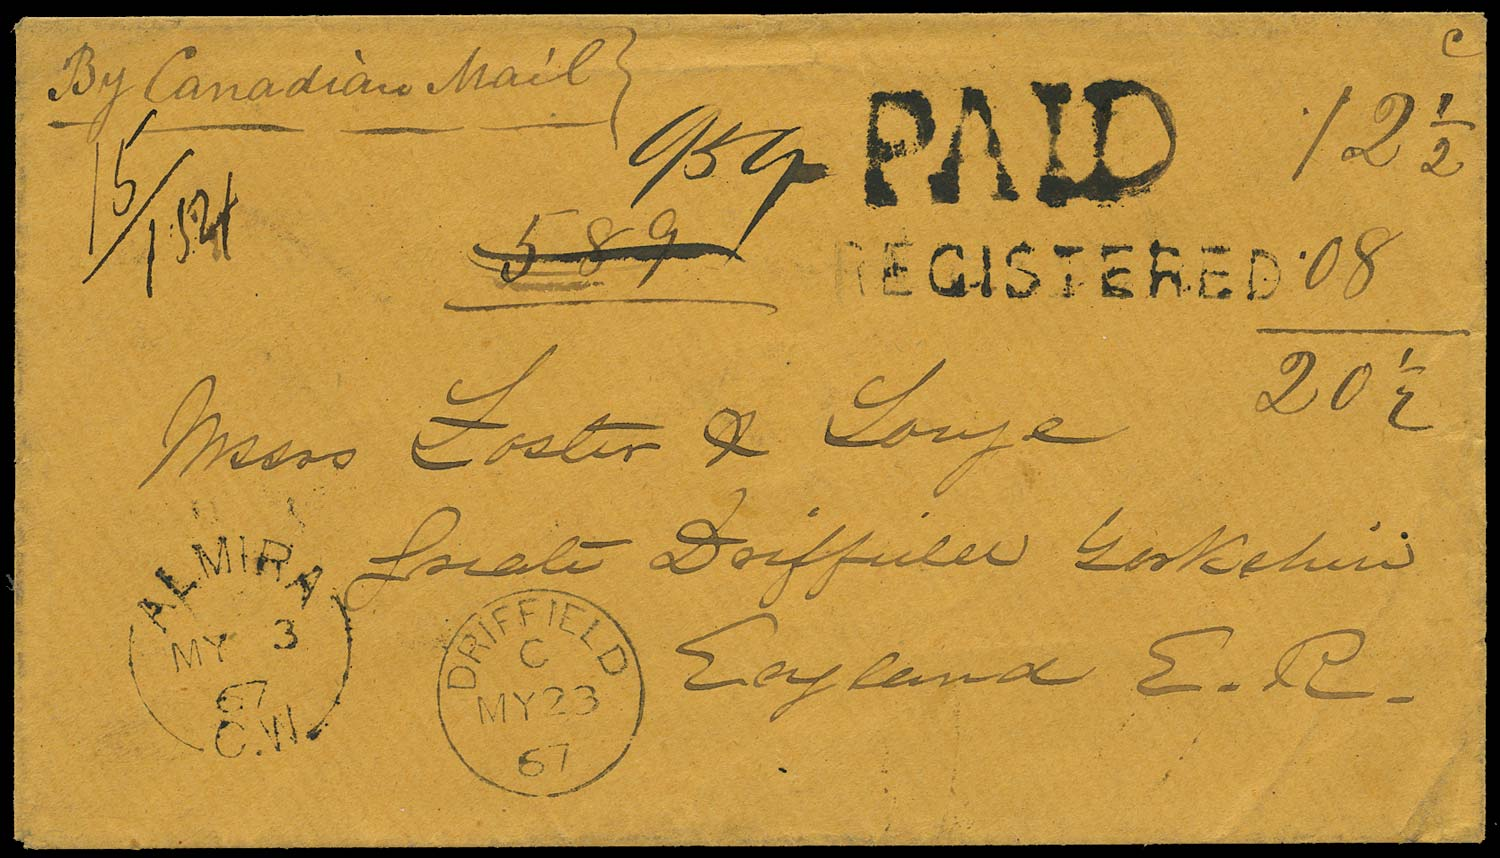 CANADA 1867 Cover registered from Almira to England 20½c rate